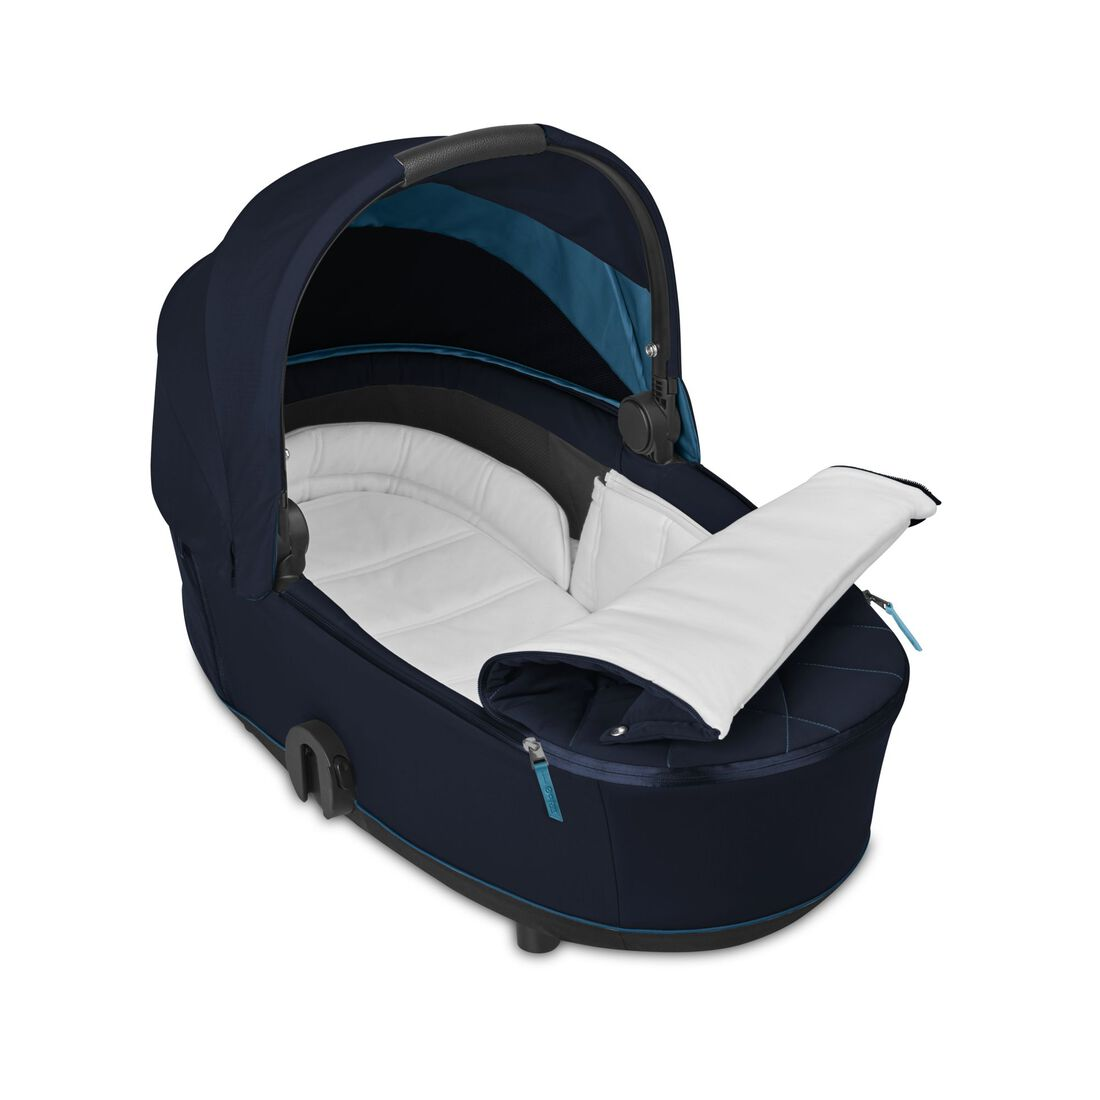 CYBEX Mios Lux Carry Cot - Nautical Blue in Nautical Blue large Bild 2